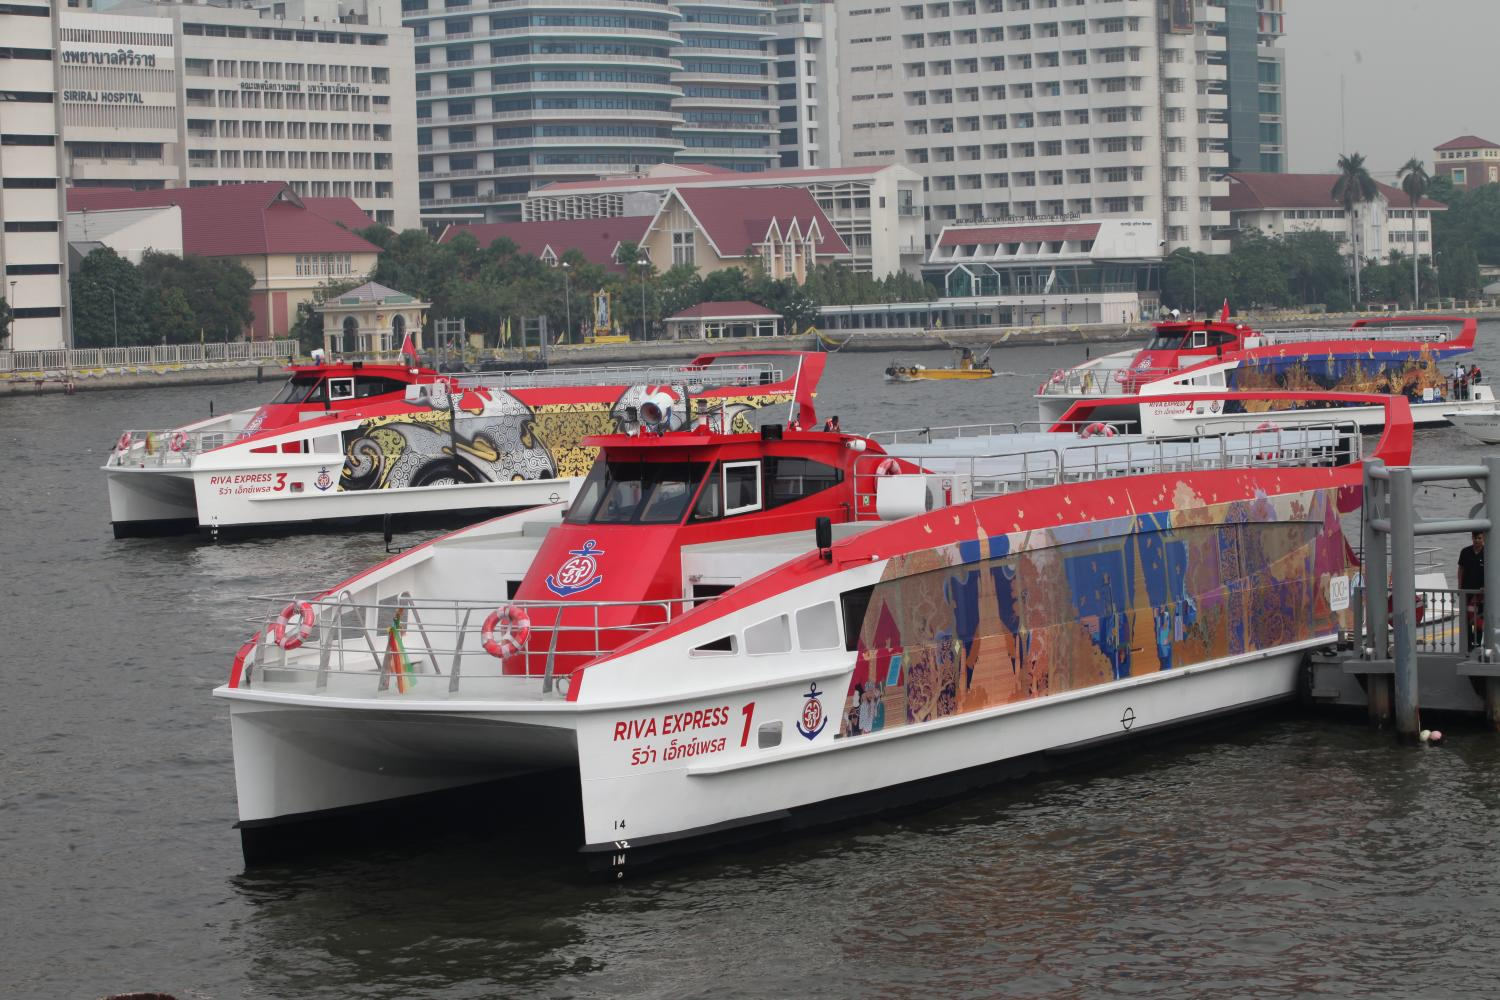 The air-conditioned 'Riva Express' boats are readied for today's official launch. (Photo by Apichart Jinakul)